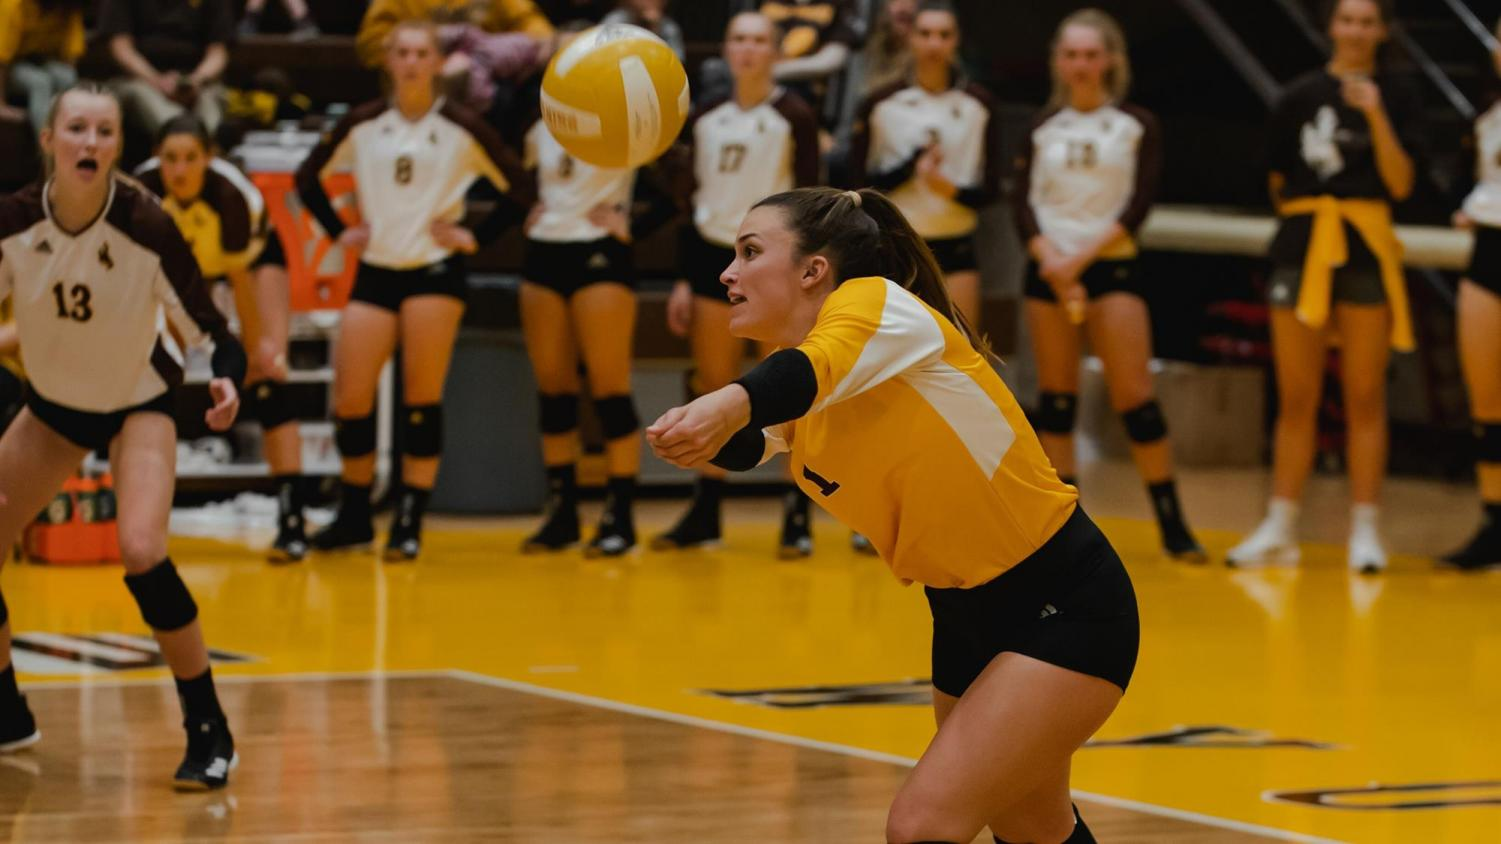 University of Wyoming senior Madi Fields passes the ball during a recent game.